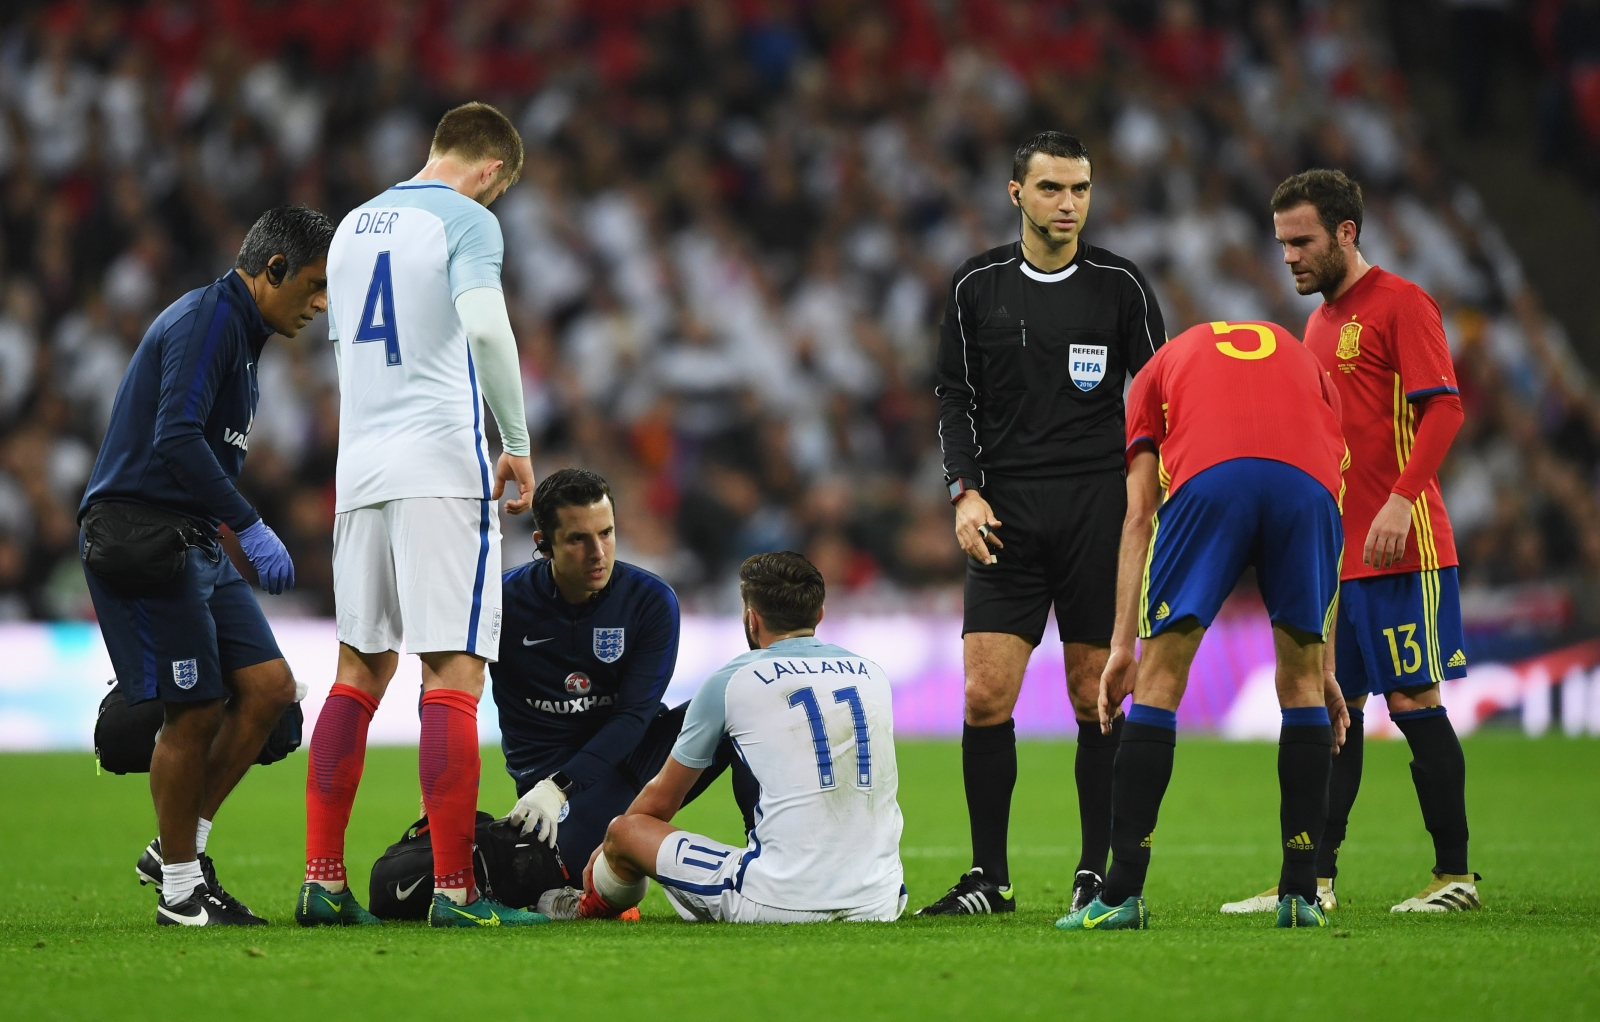 Updates on Liverpool's Adam Lallana after his injury for England